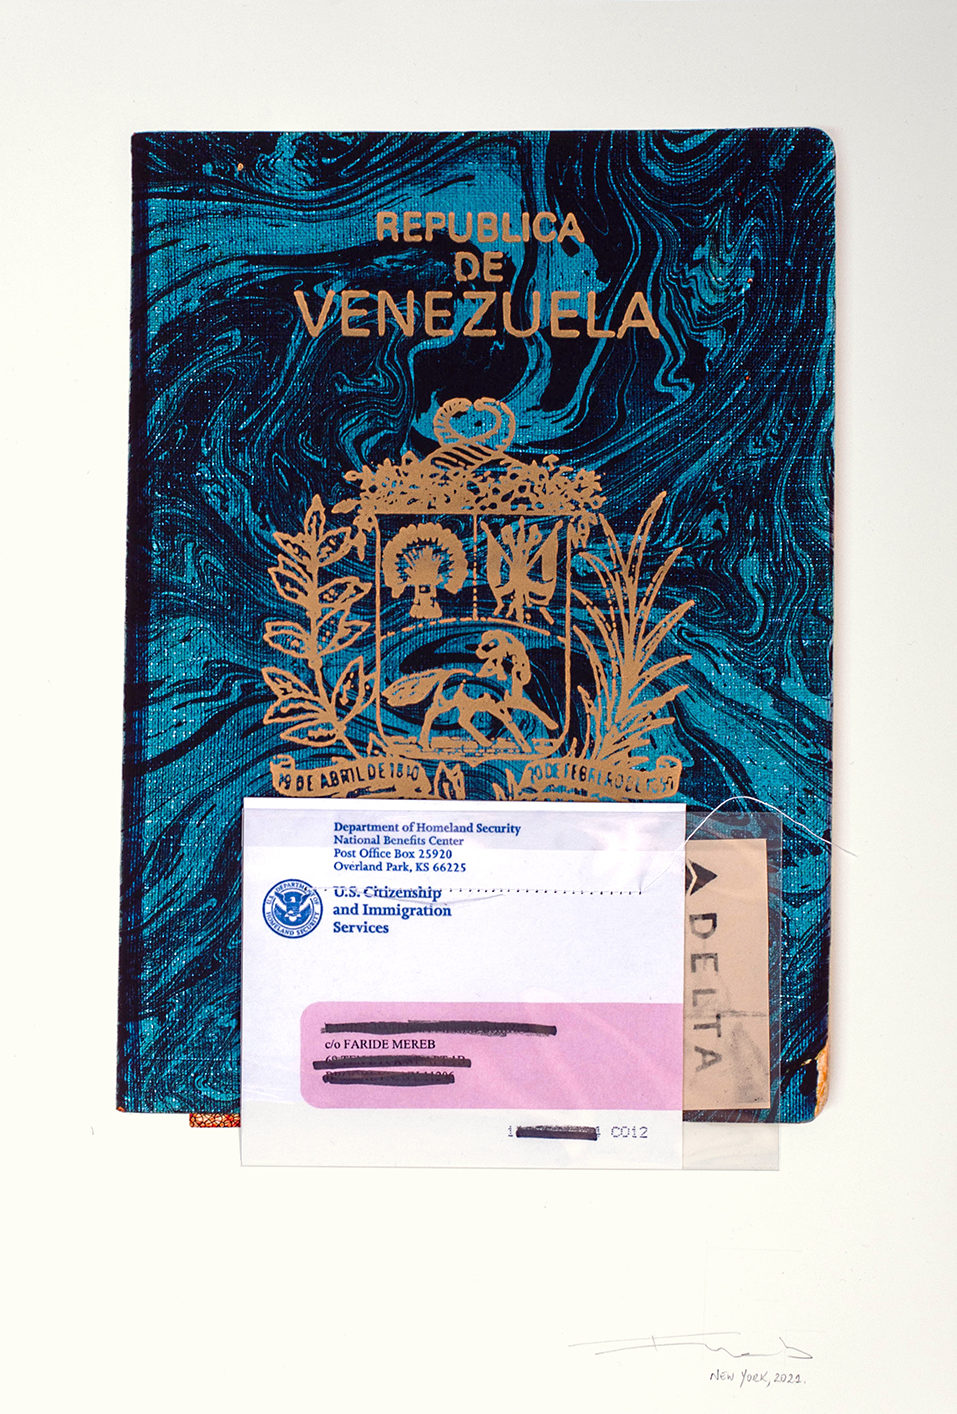 A photo of a print resembling a Venezuelan passport with other documents sewn to it